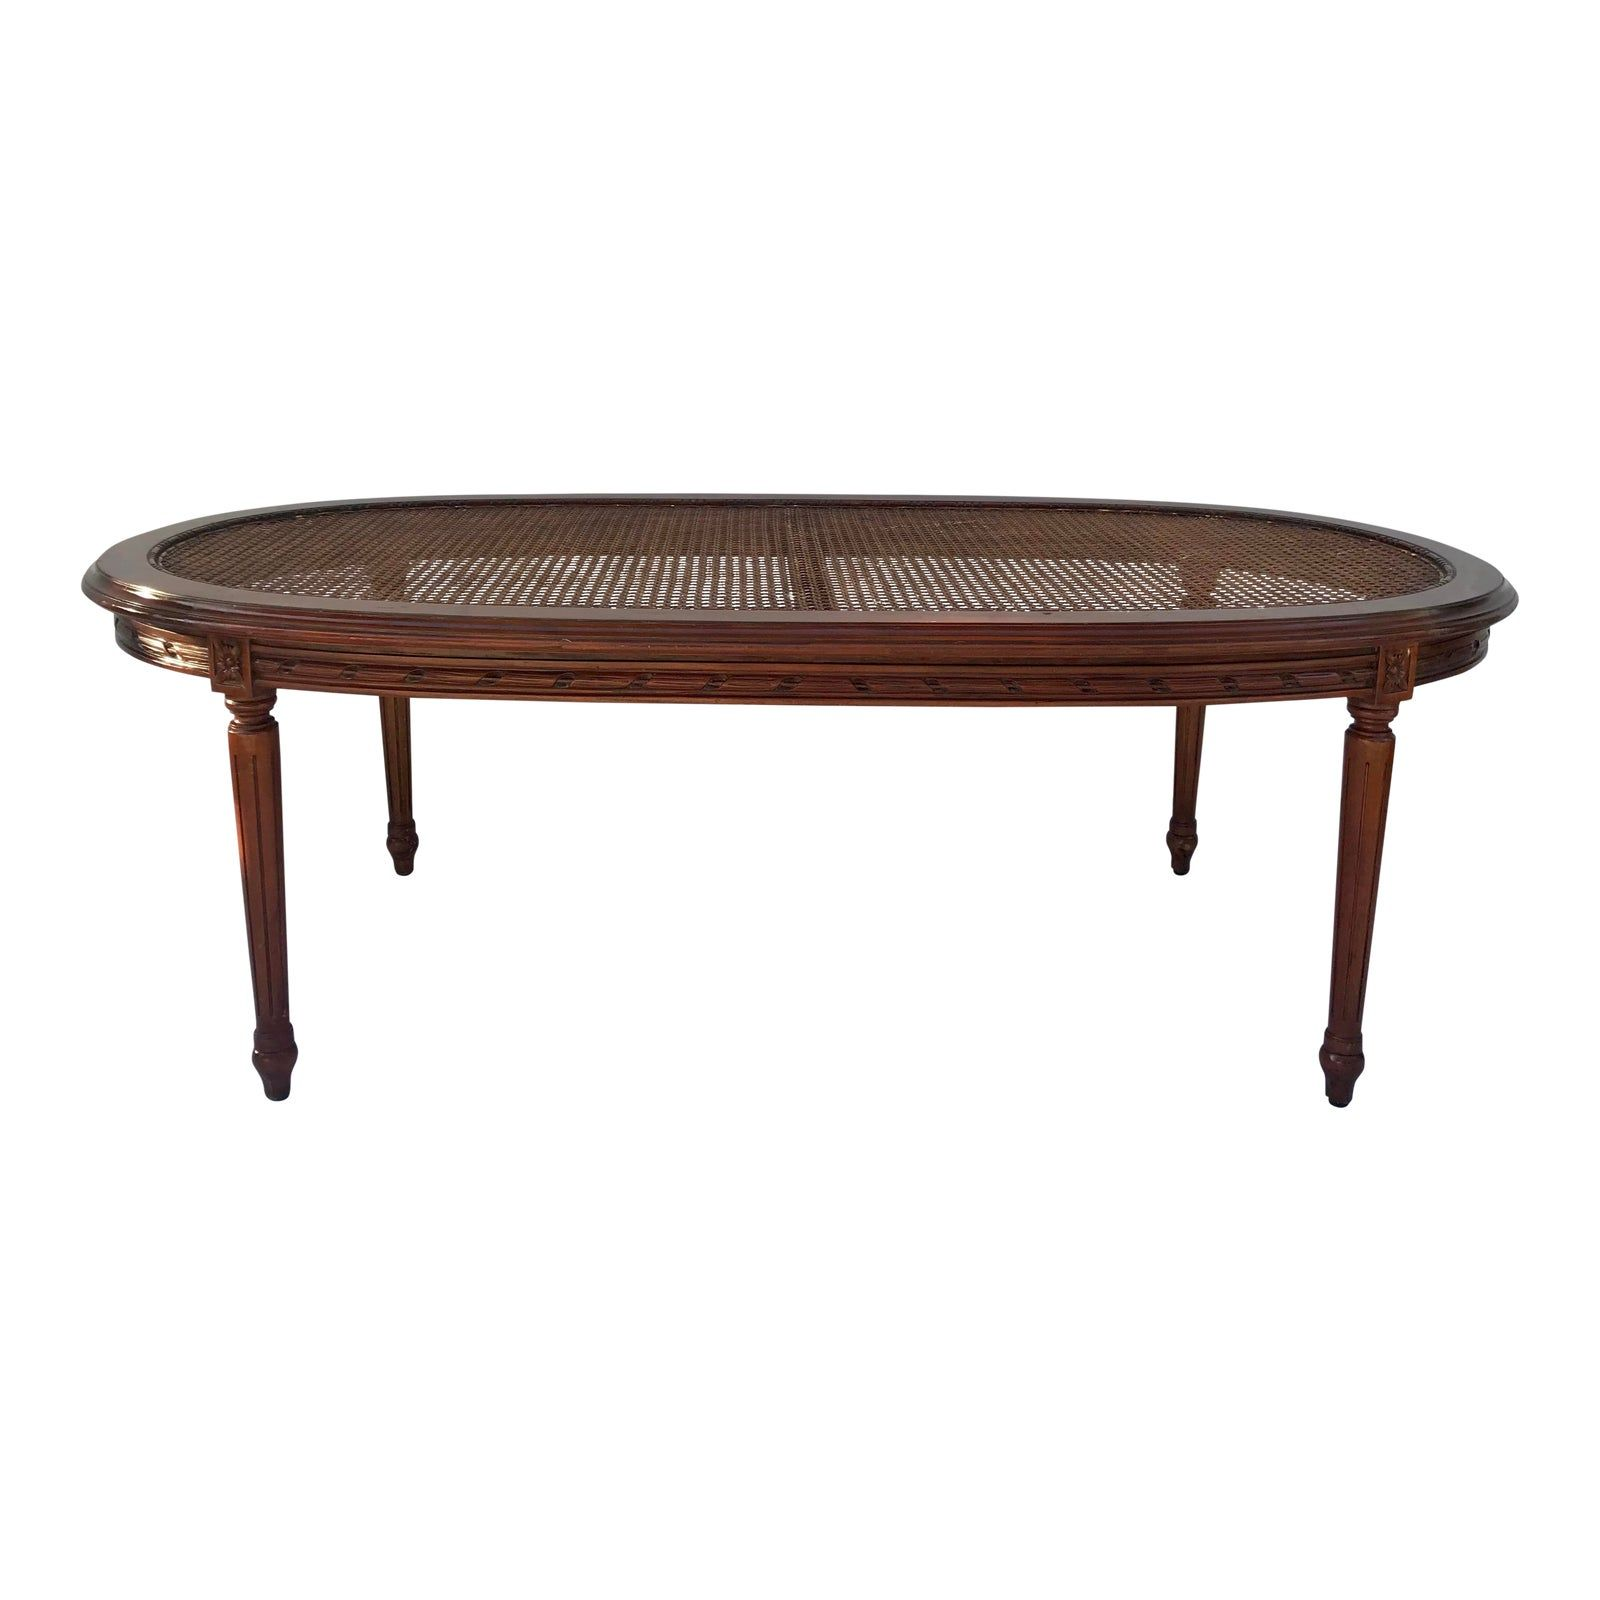 Antique Carved Wood And Cane Oval Coffee Table Chairish Coffee Table Oval Coffee Tables Table [ 1600 x 1600 Pixel ]